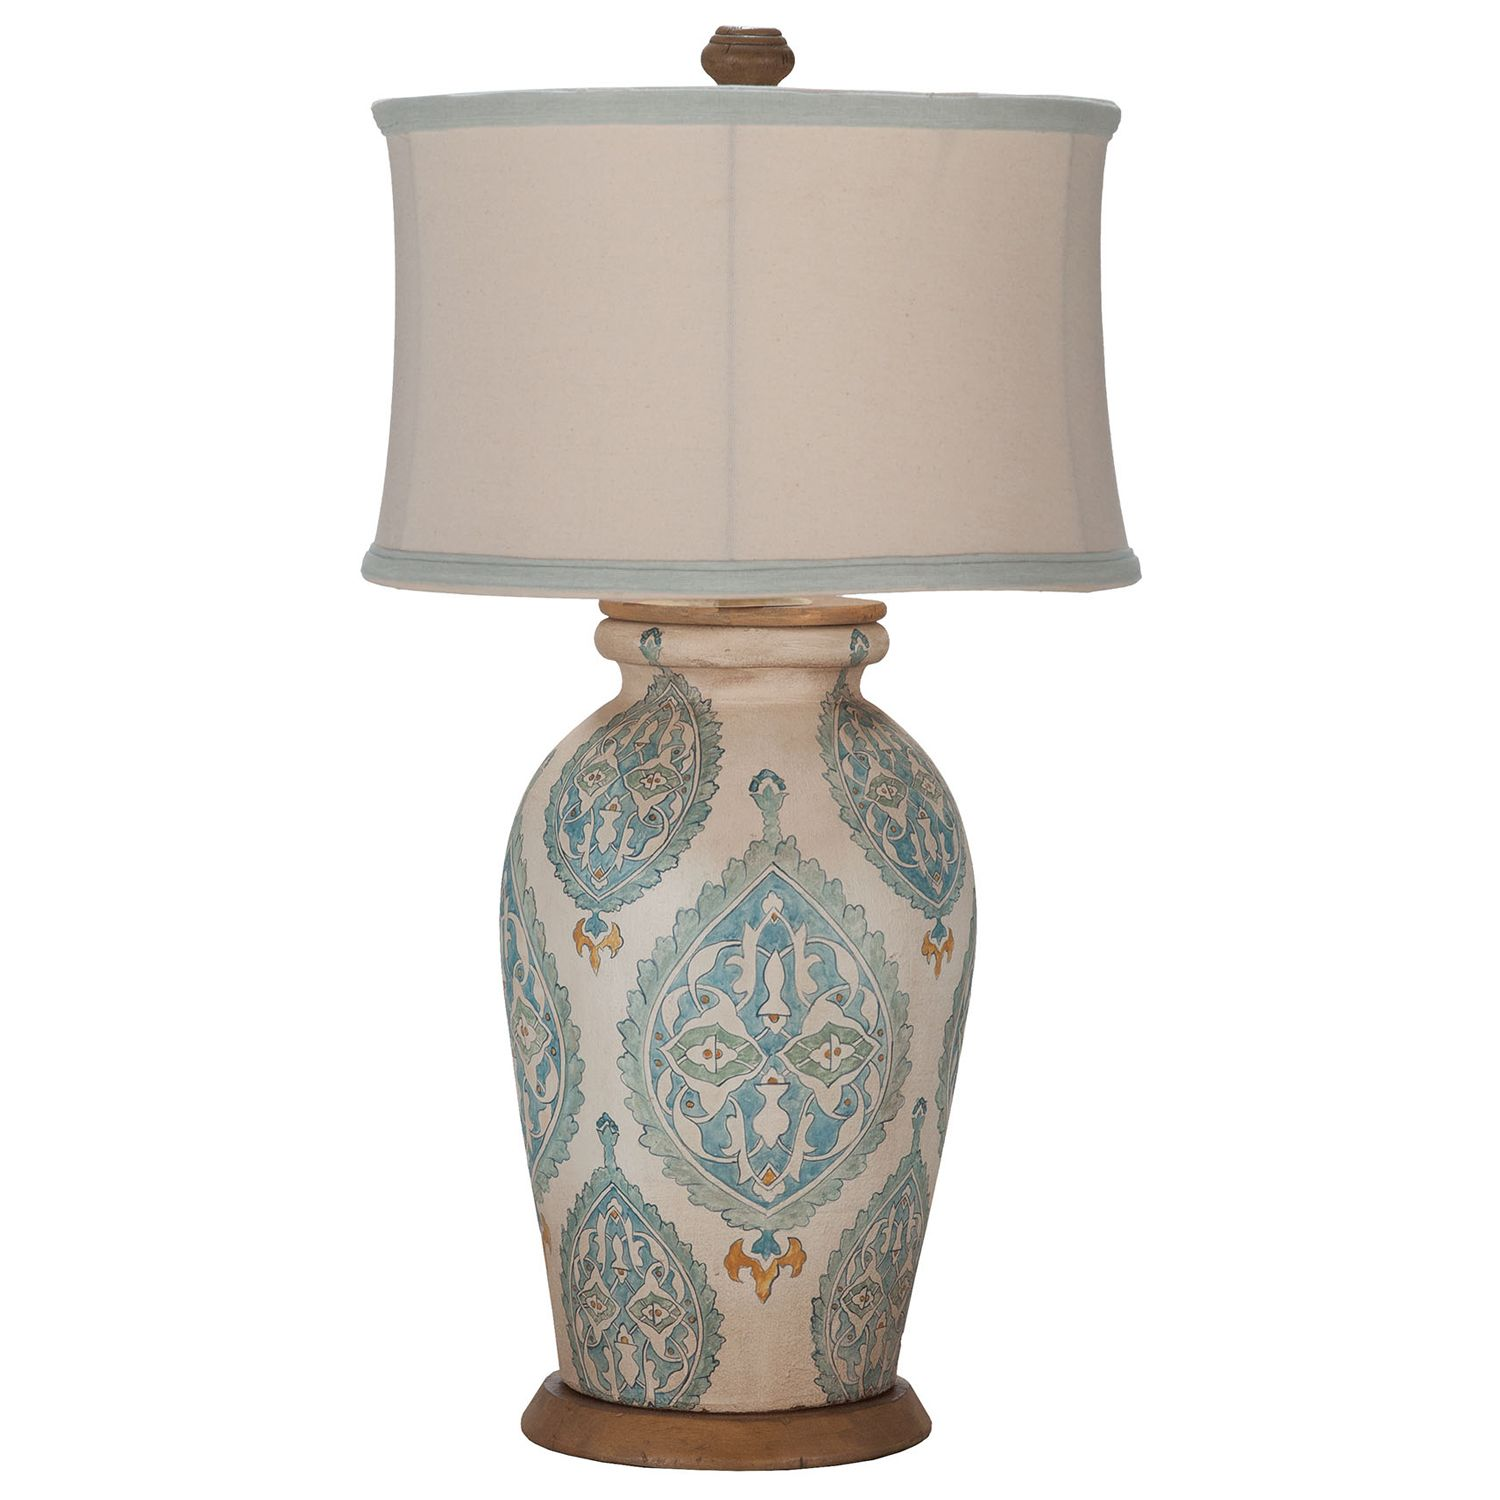 The Jaipur table lamp gains inspiration from traditional Indian ...